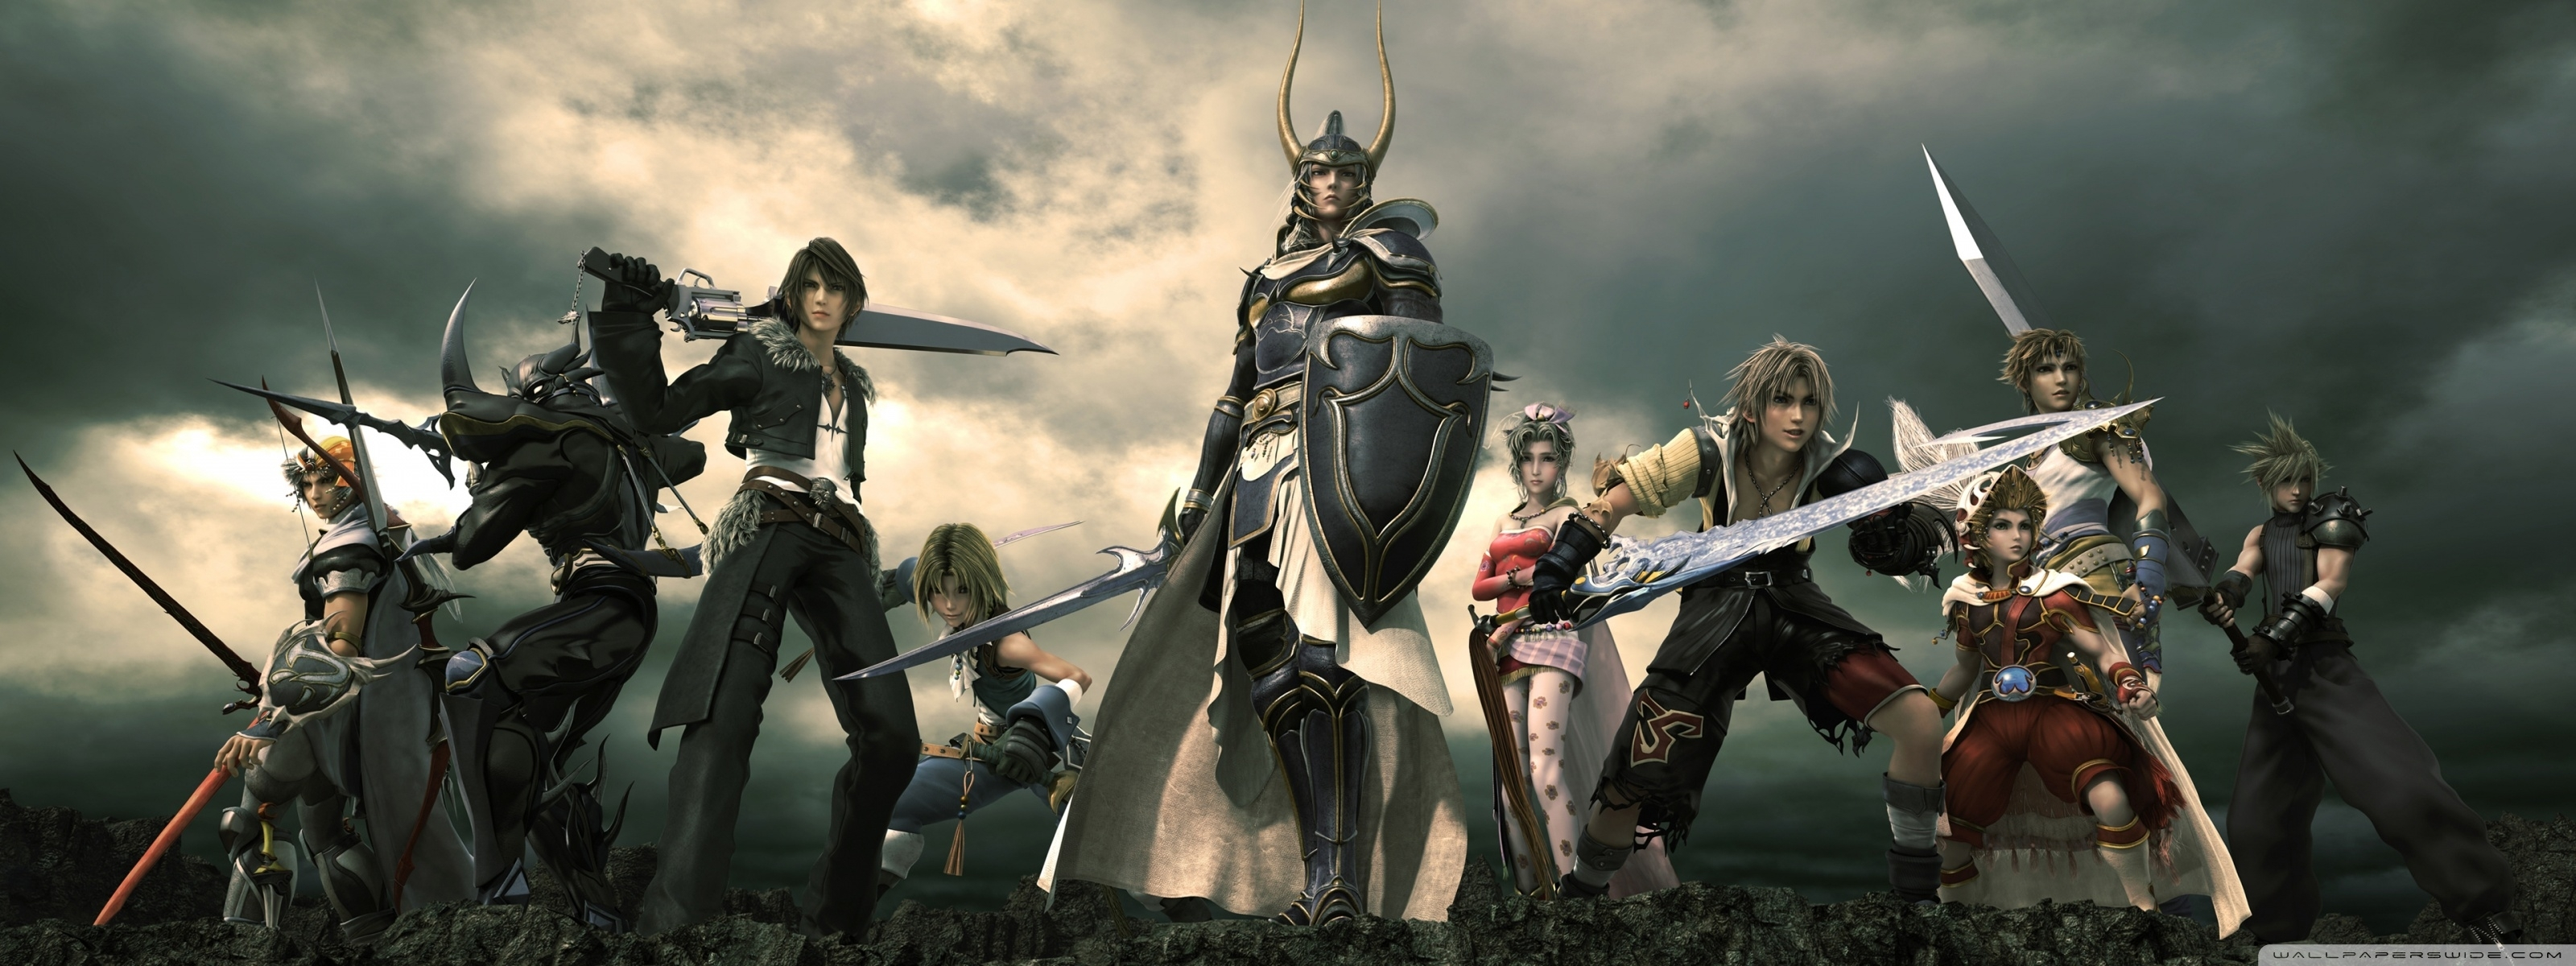 dissidia final fantasy ❤ 4k hd desktop wallpaper for 4k ultra hd tv